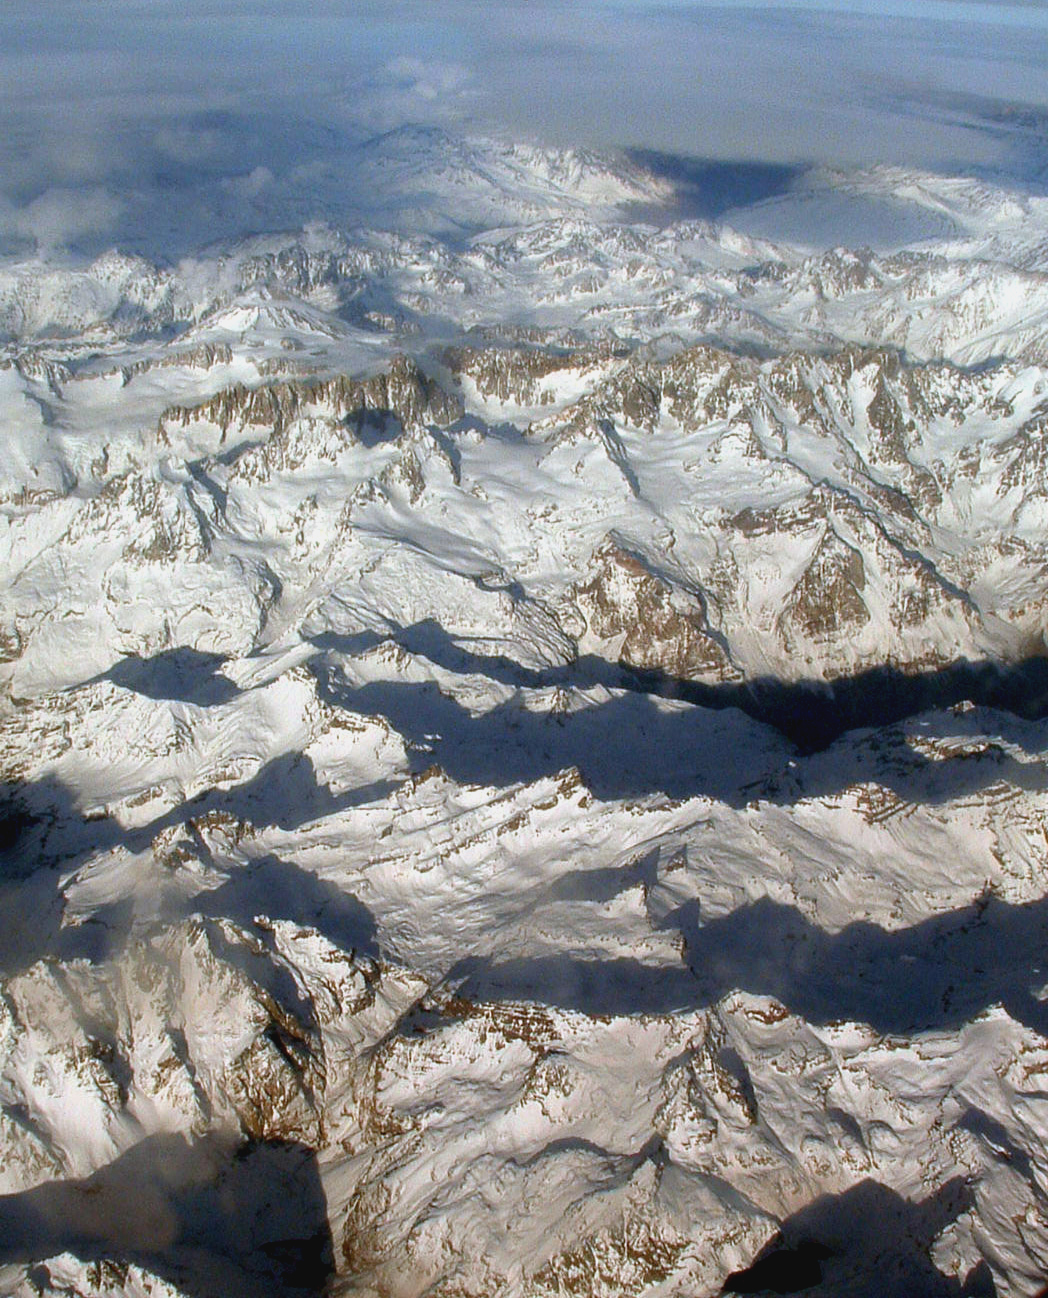 Andes - Simple English Wikipedia, the free encyclopedia